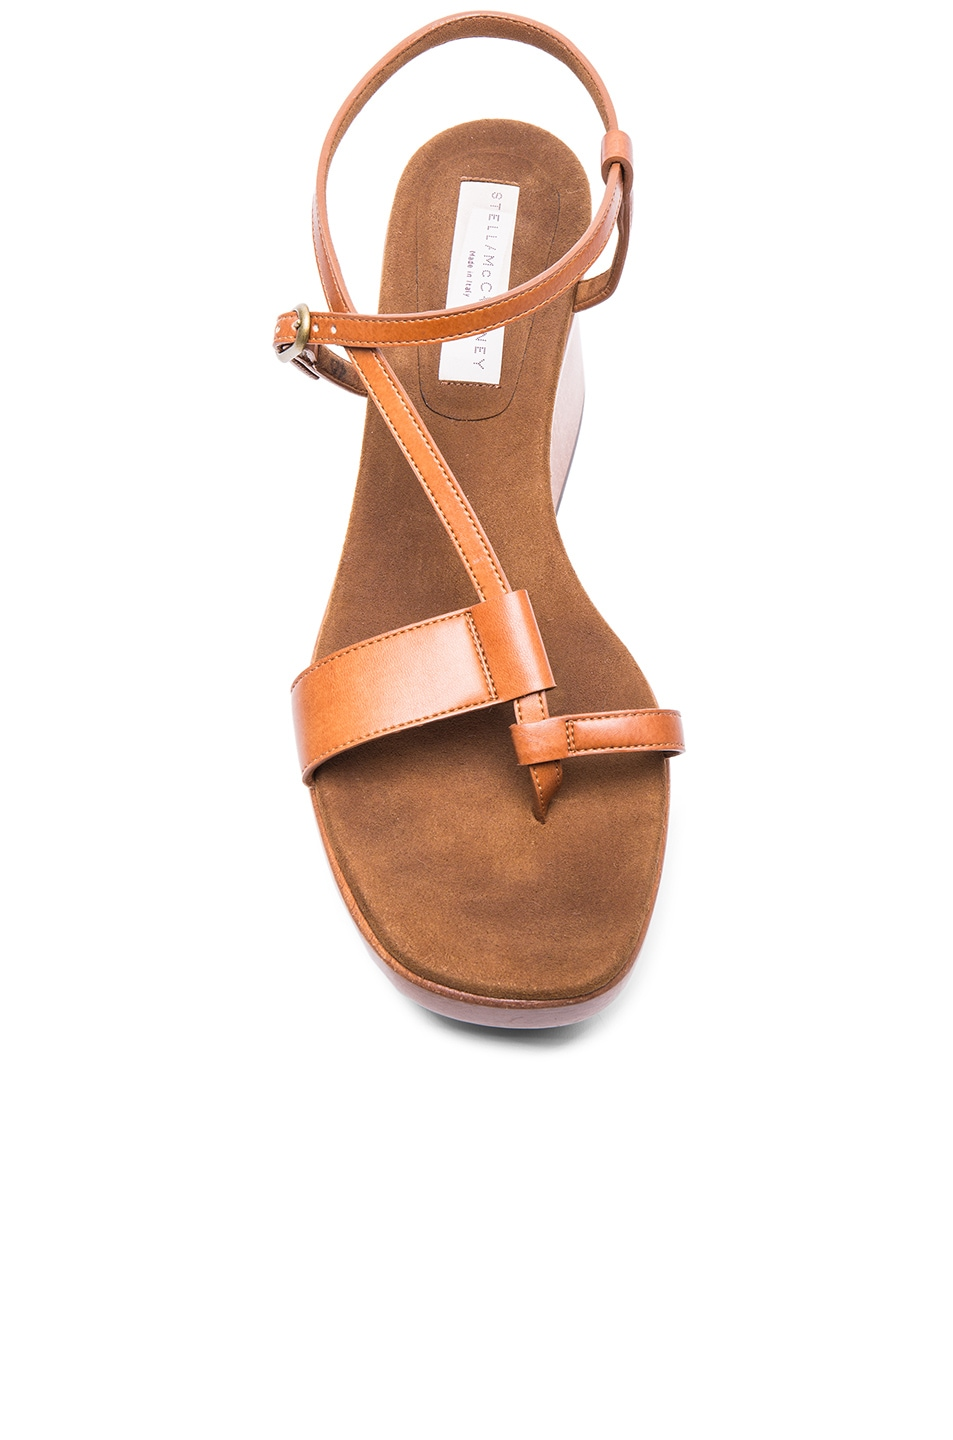 71456525686d Image 4 of Stella McCartney Altea Sandals in Canyon